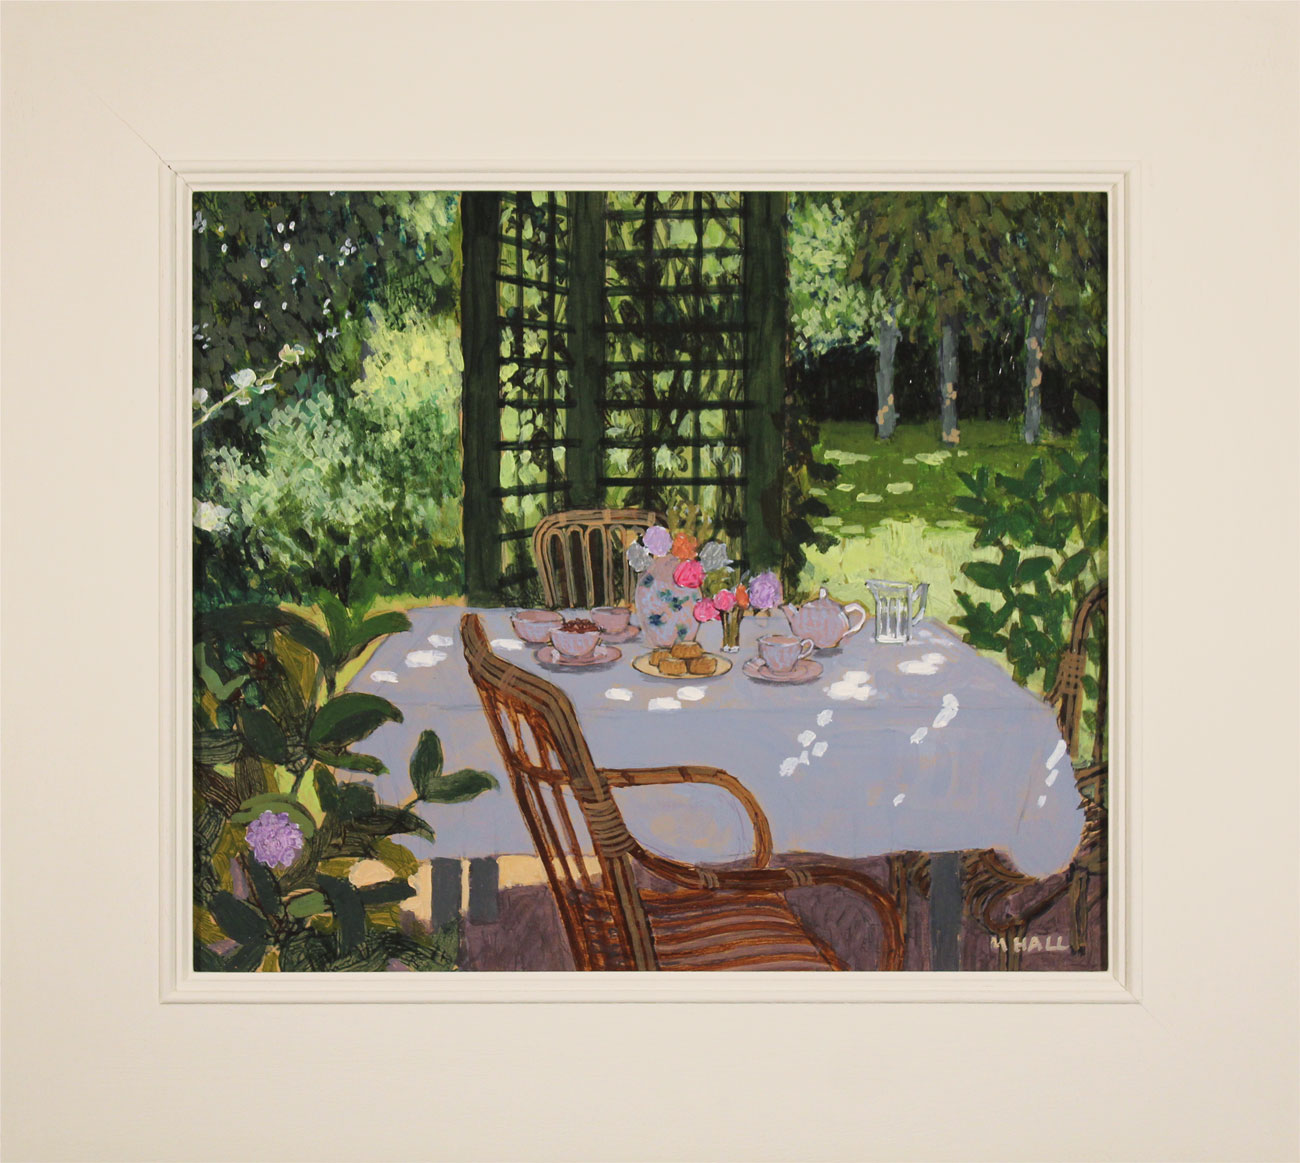 Mike Hall, Original acrylic painting on board, Table Set for Tea, click to enlarge